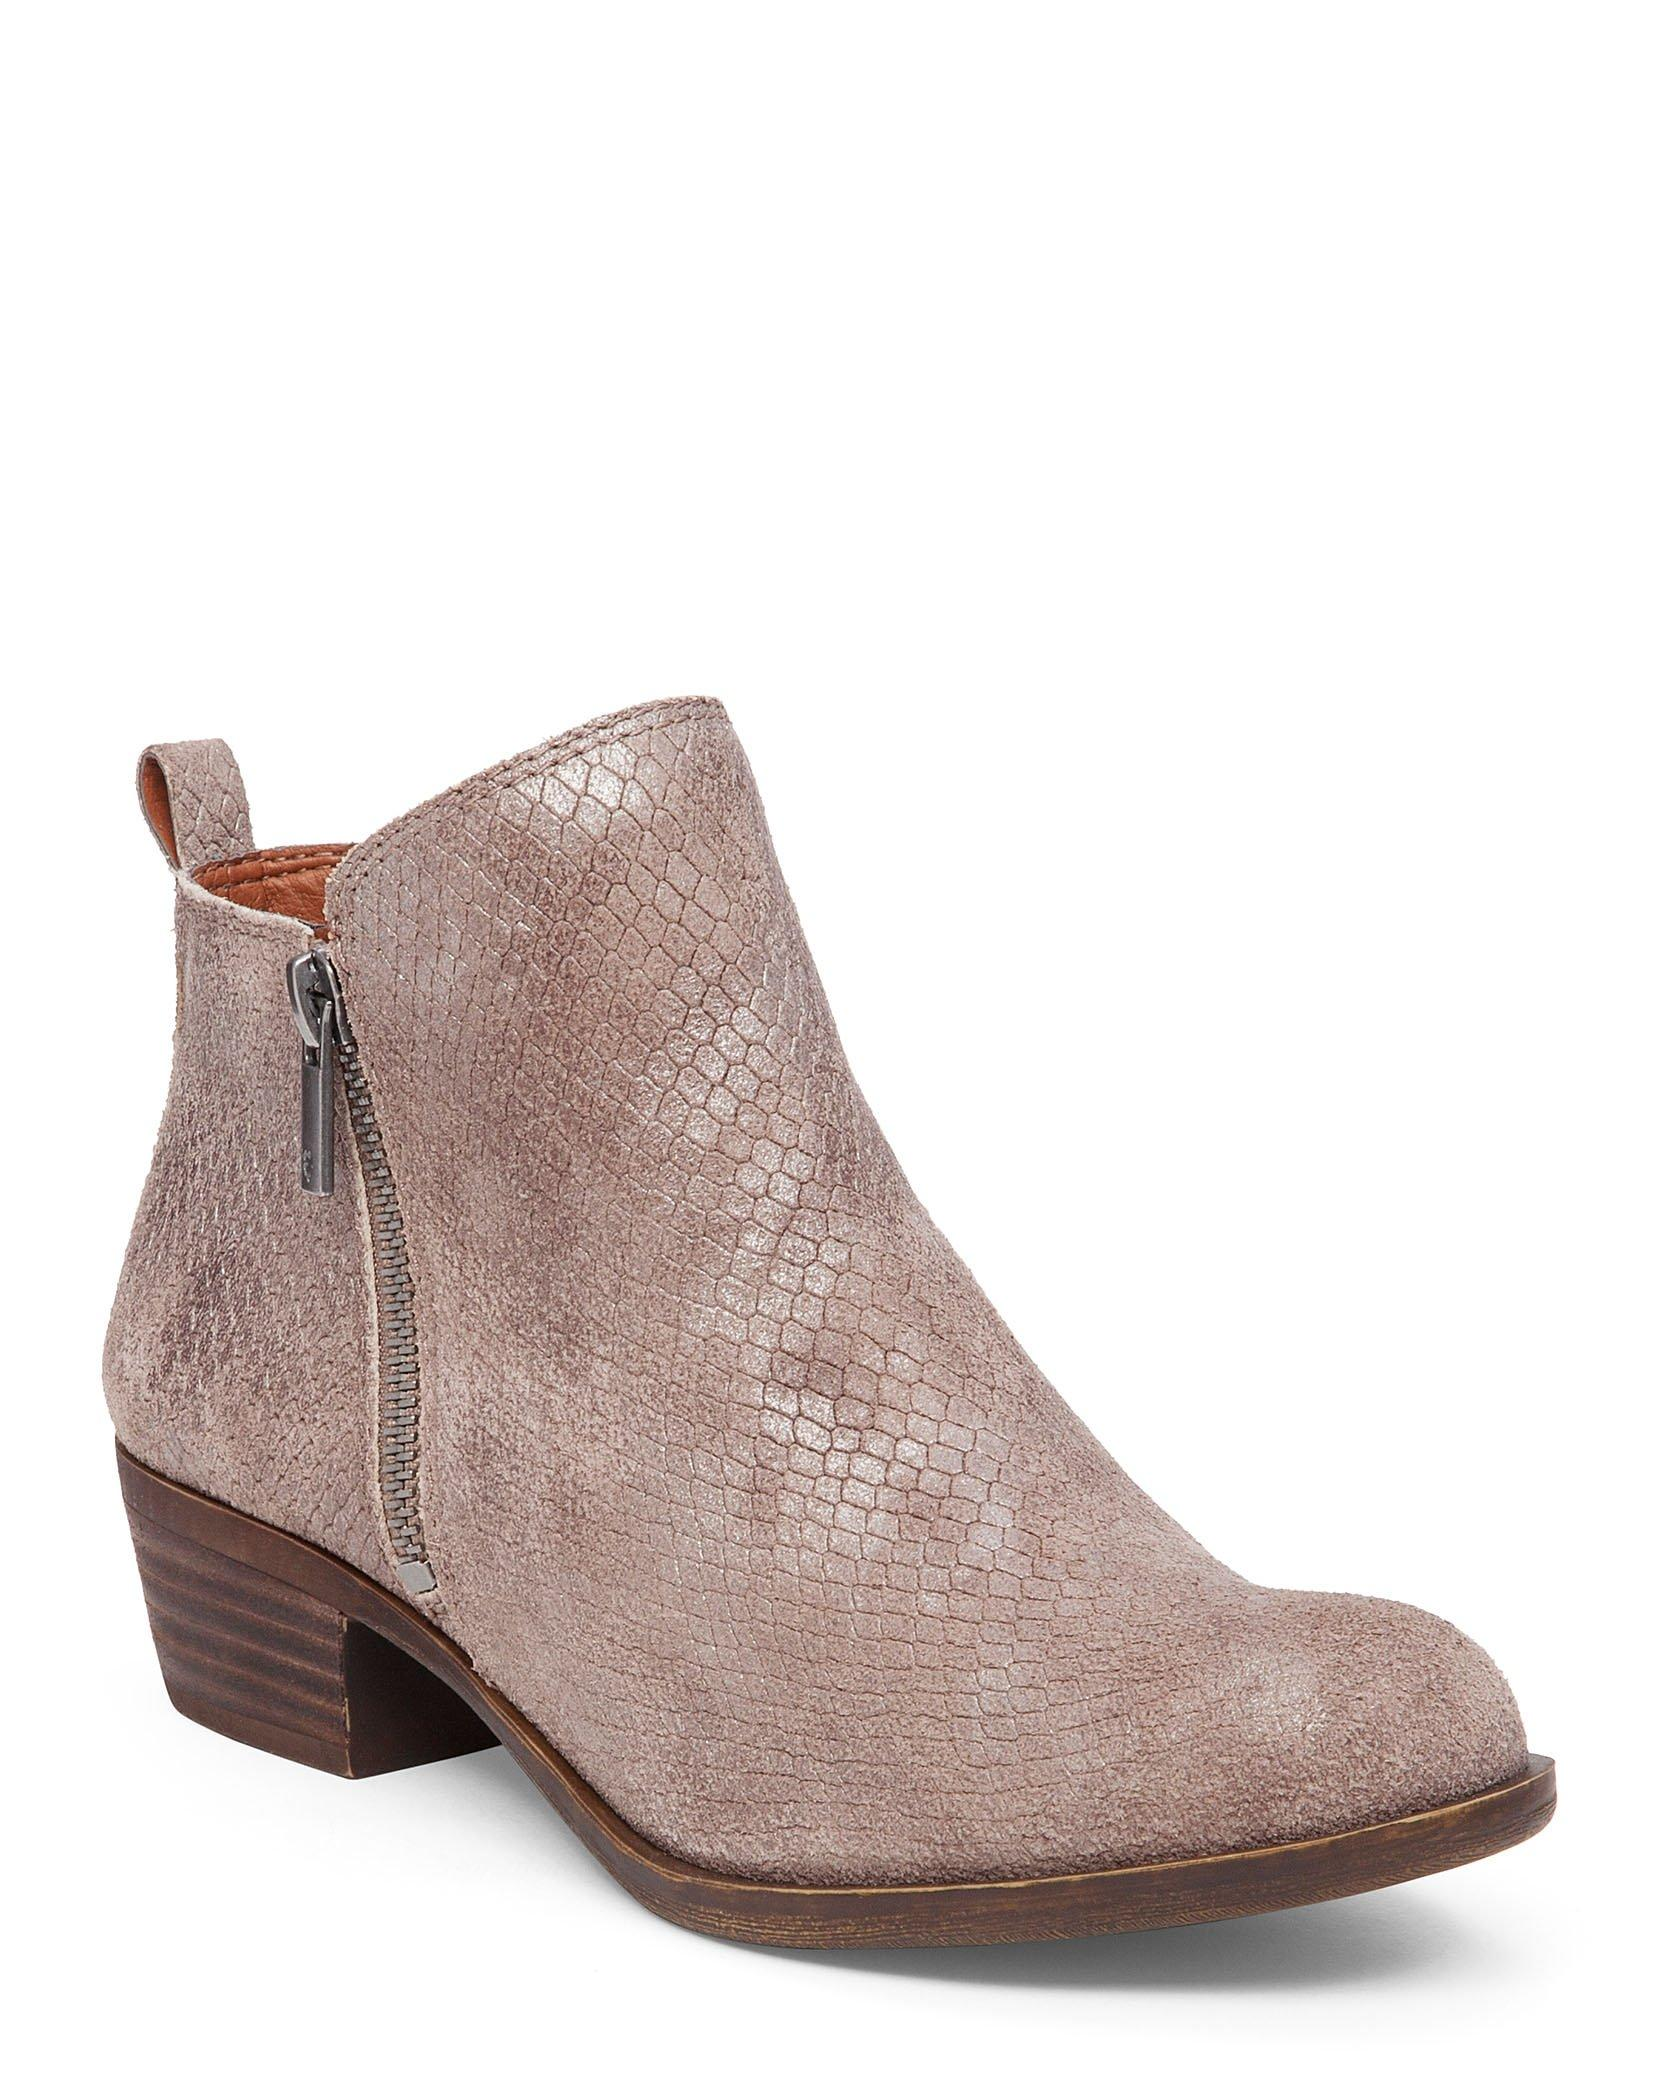 BASEL LEATHER FLAT BOOTIE, image 1